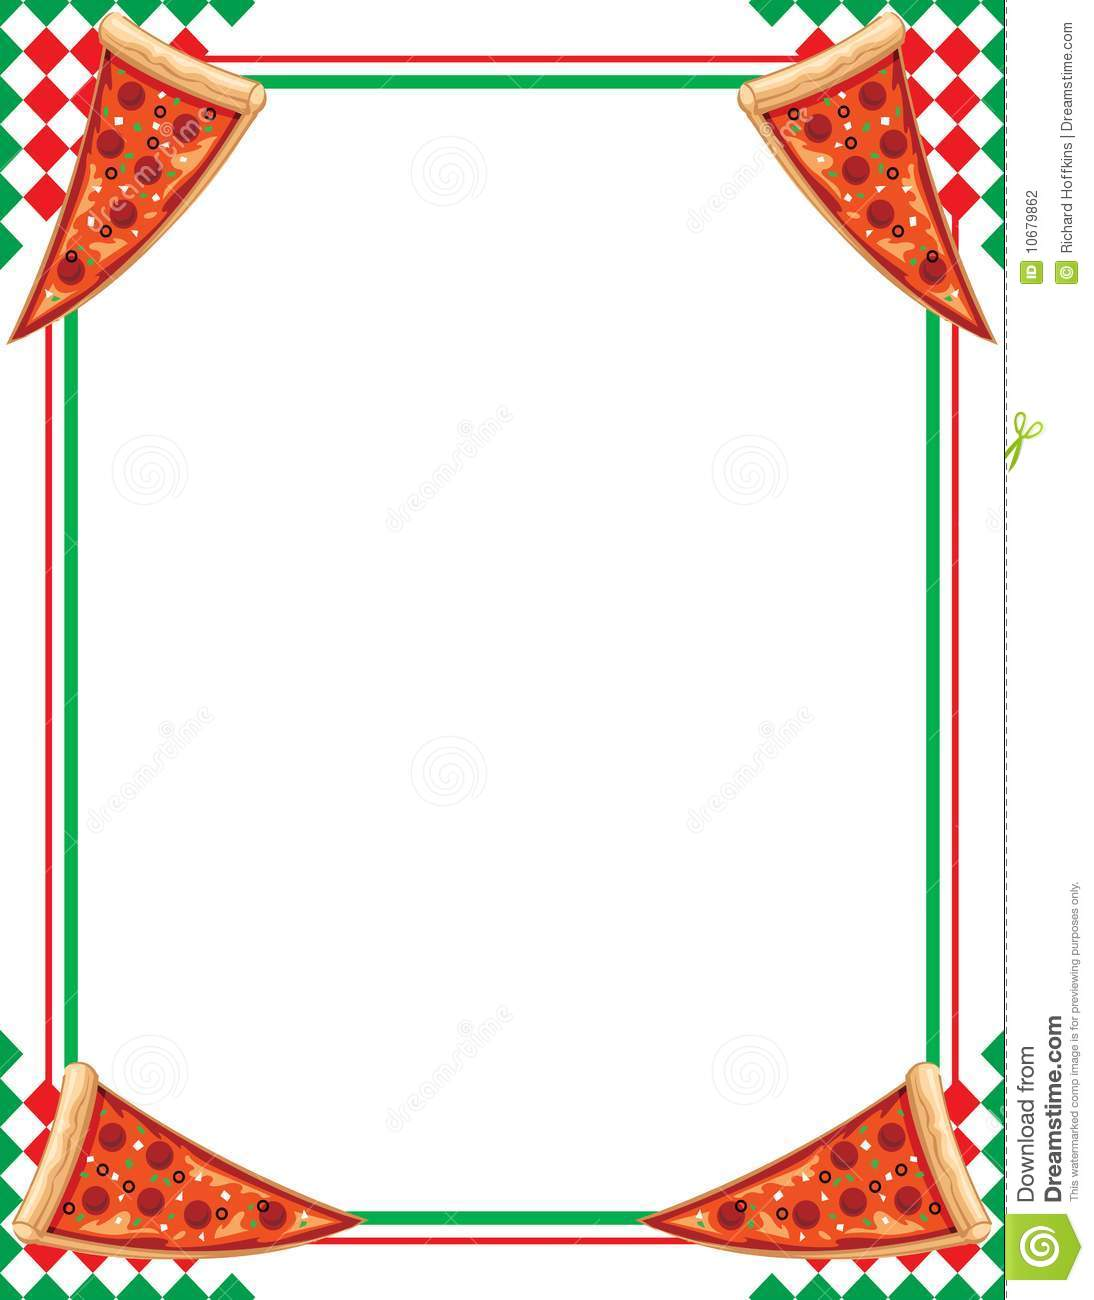 Download image Pizza Clip Art Borders And Frames PC, Android, iPhone ...